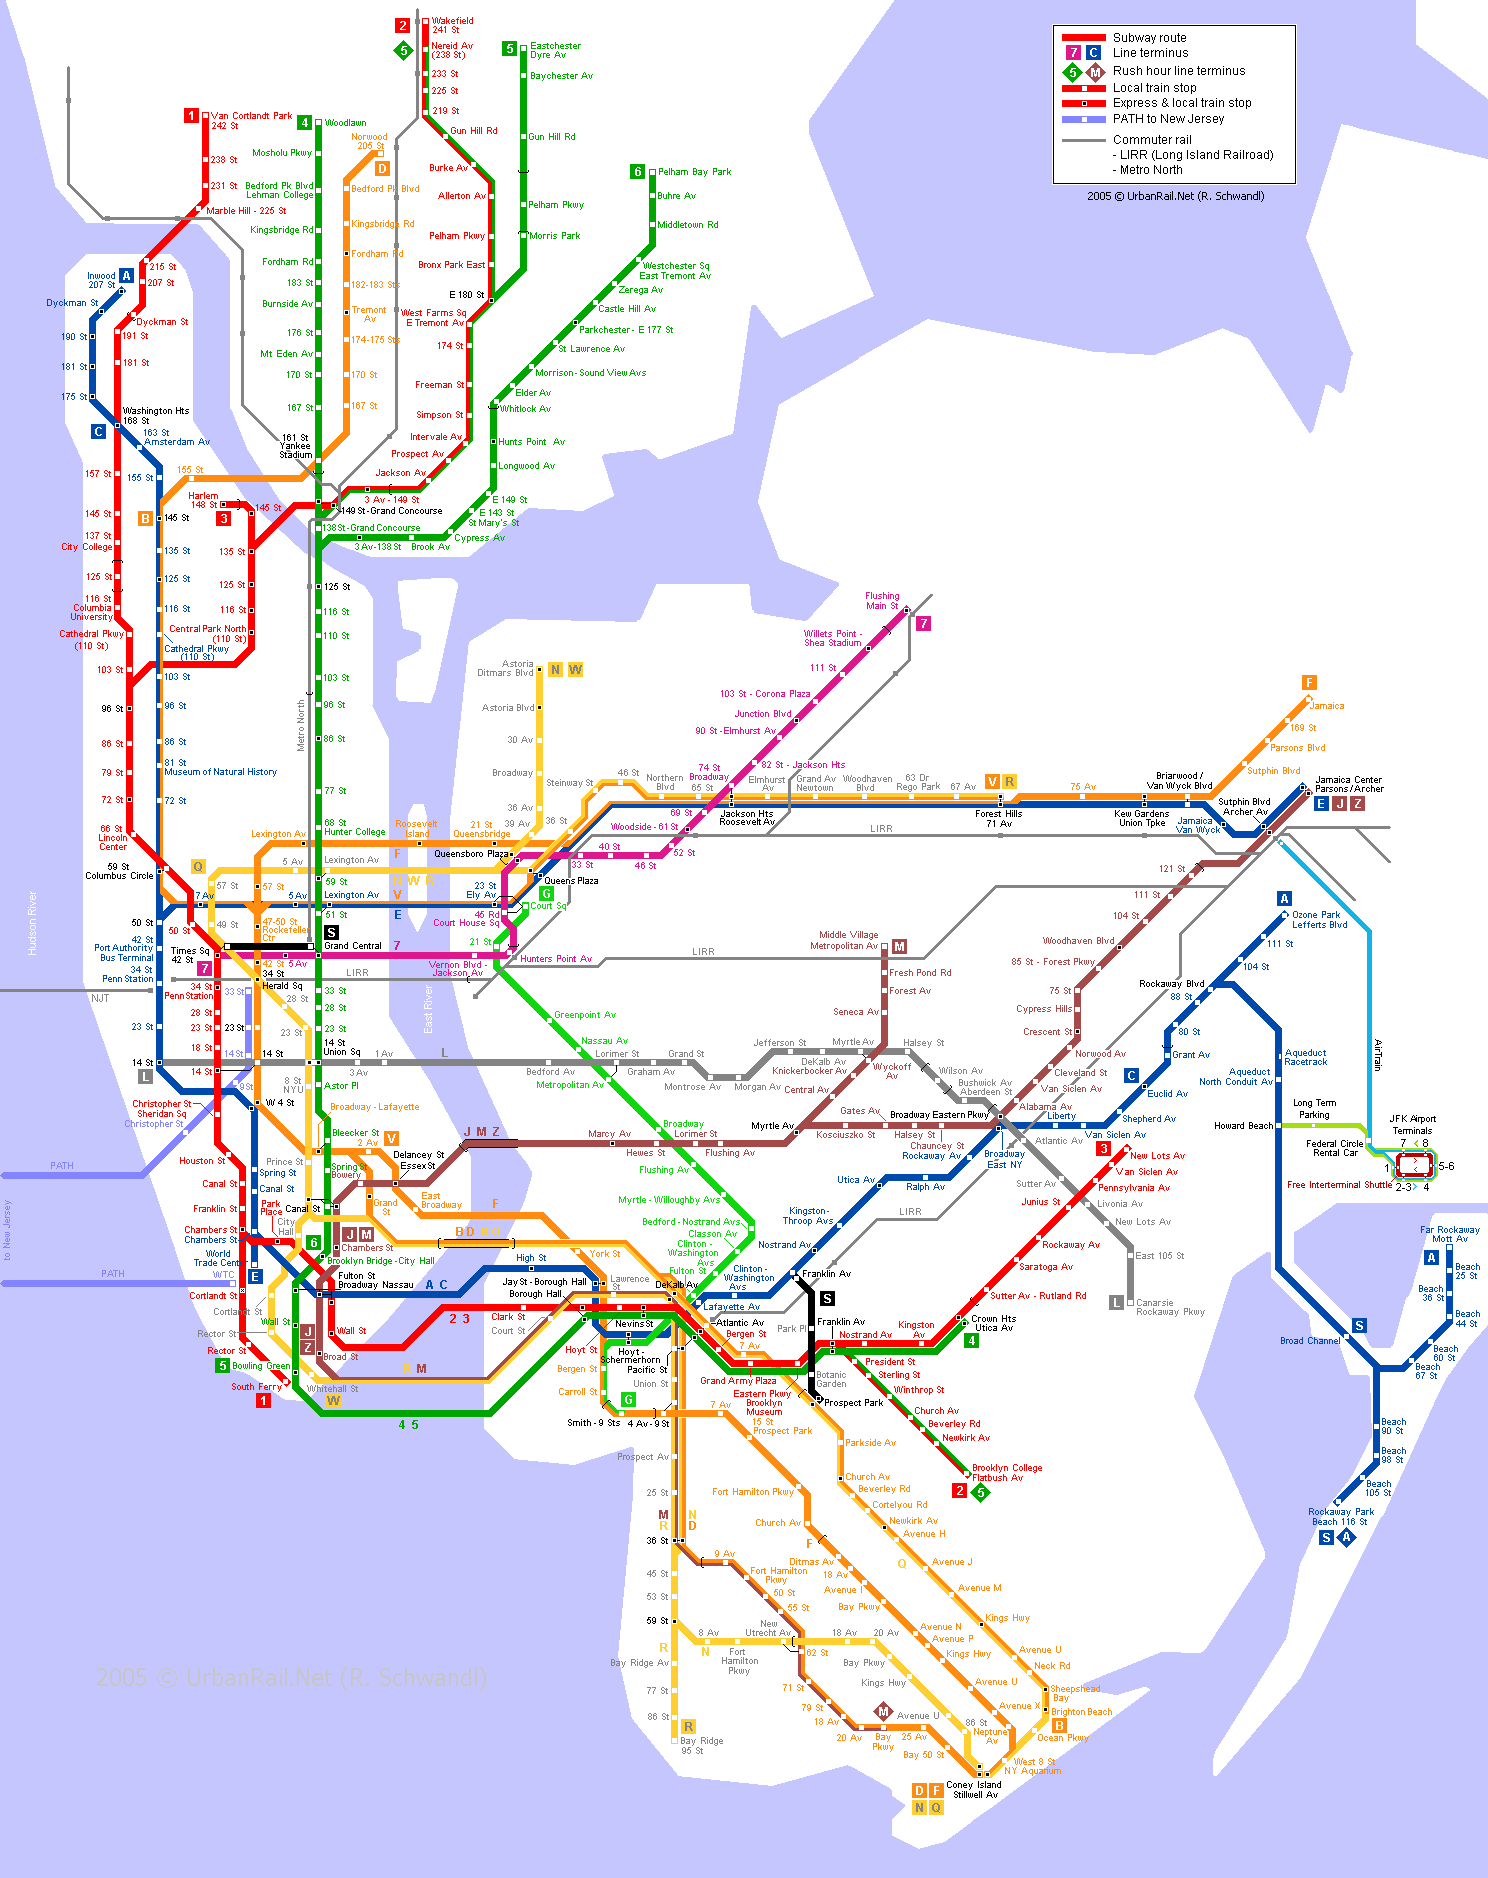 Ny York Subway Map.New York Subway Map For Download Metro In New York High